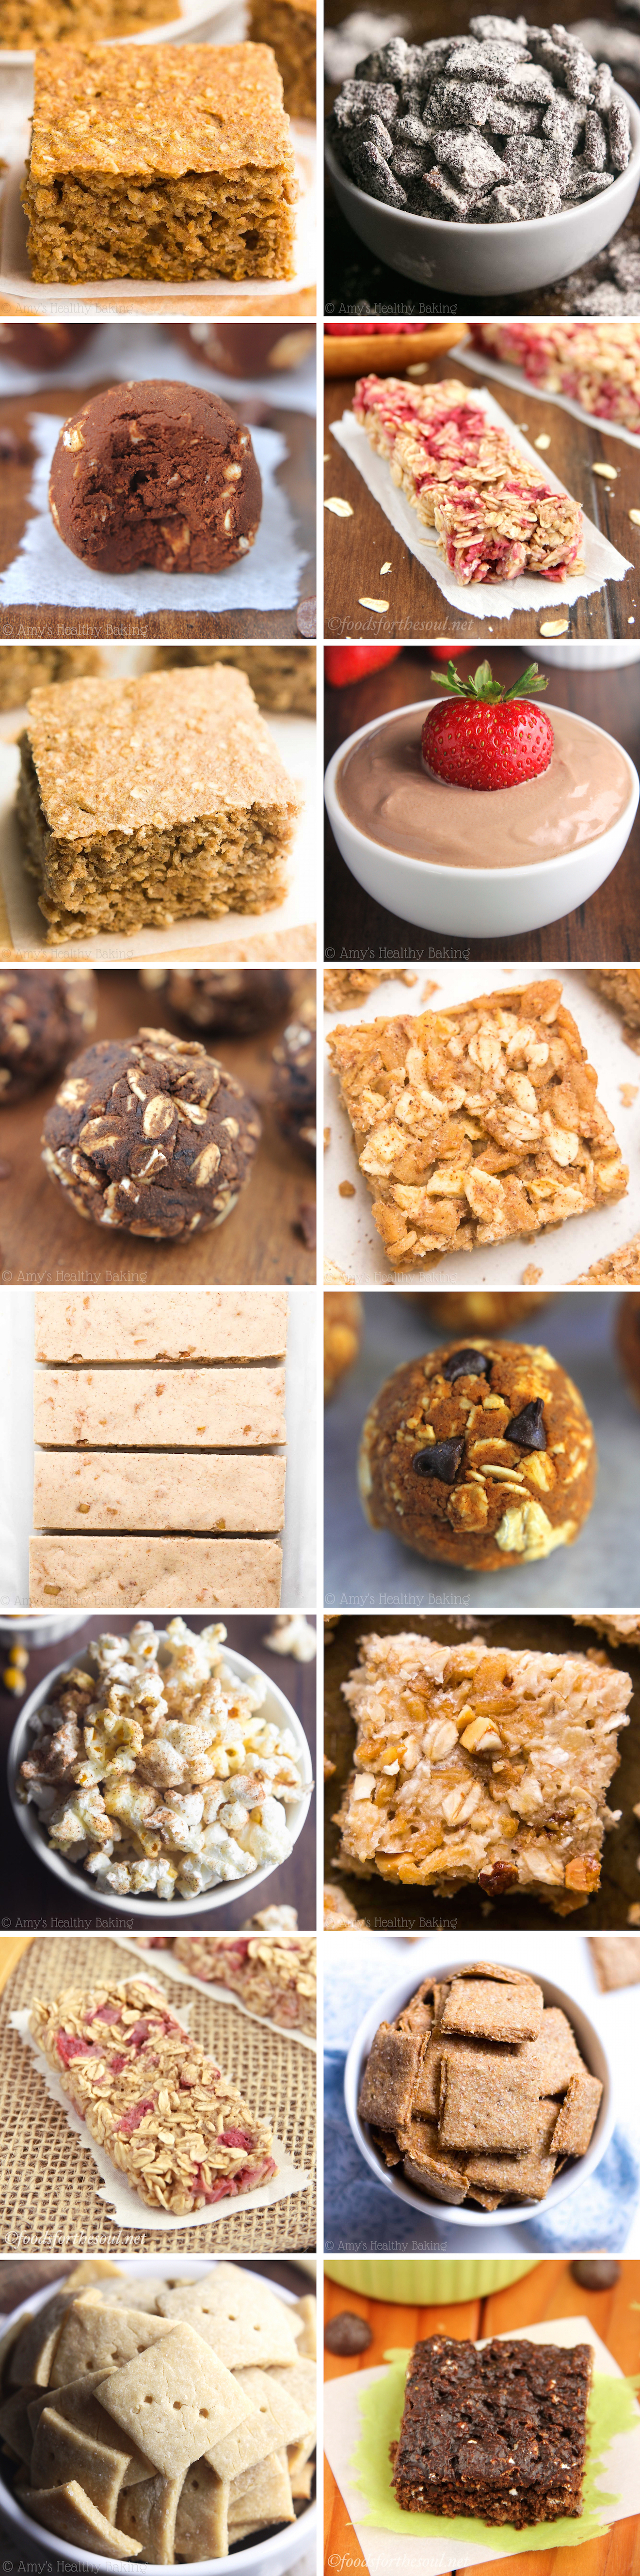 40 easy healthy snack recipes amys healthy baking 40 easy healthy snack recipes all made with no artificial ingredients refined forumfinder Images